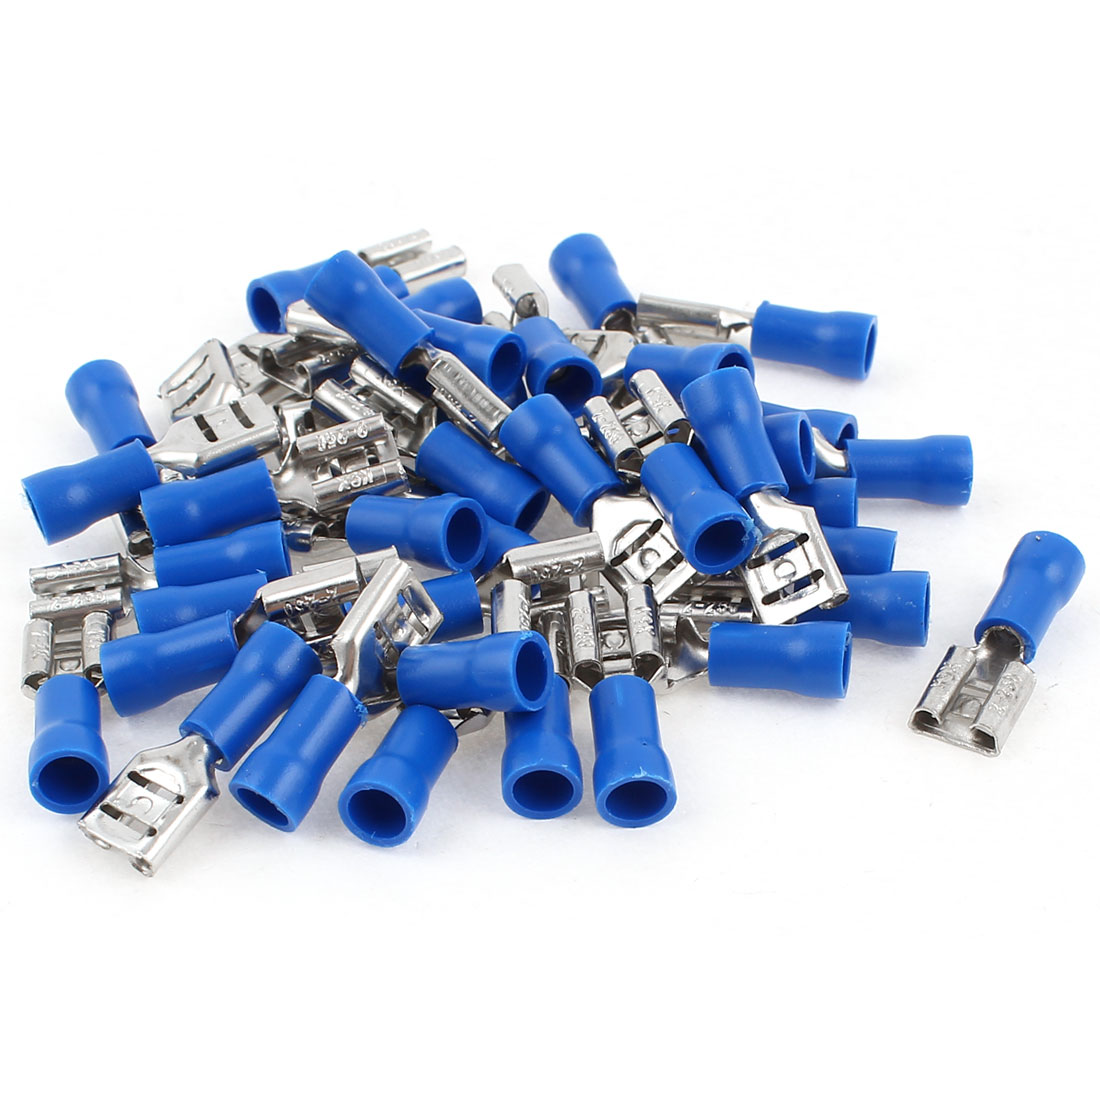 40 Pcs Blue Pre Insulated AWG16-14 Cable Spade Crimp Terminals FDD 2-250